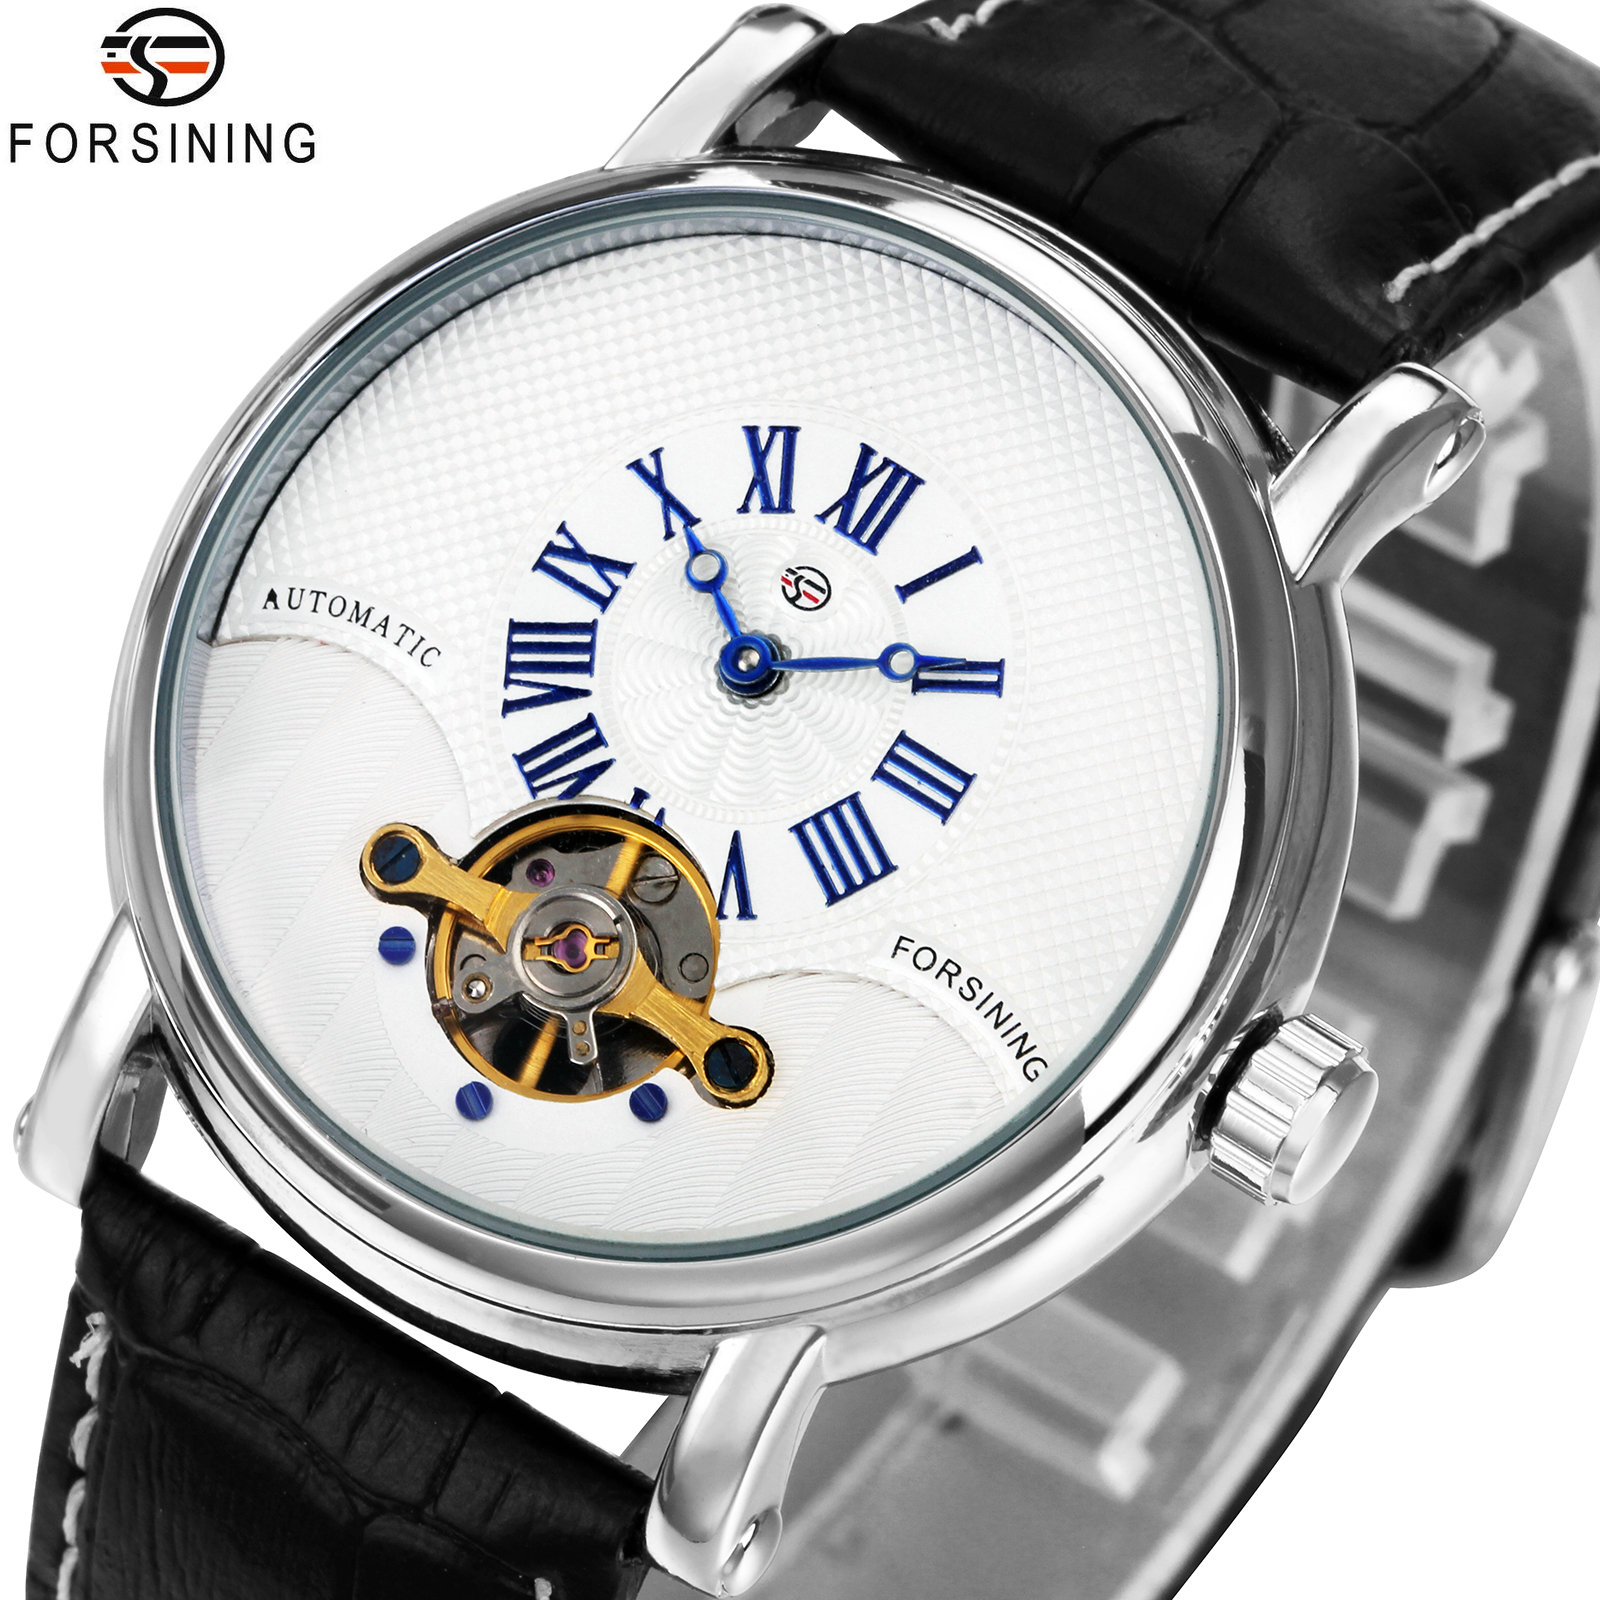 FORSINING Fashion Retro Men Automatic Mechanical Watches Roman Number Dial Tourbillon Design Leather Band Top Brand Luxury ClockFORSINING Fashion Retro Men Automatic Mechanical Watches Roman Number Dial Tourbillon Design Leather Band Top Brand Luxury Clock